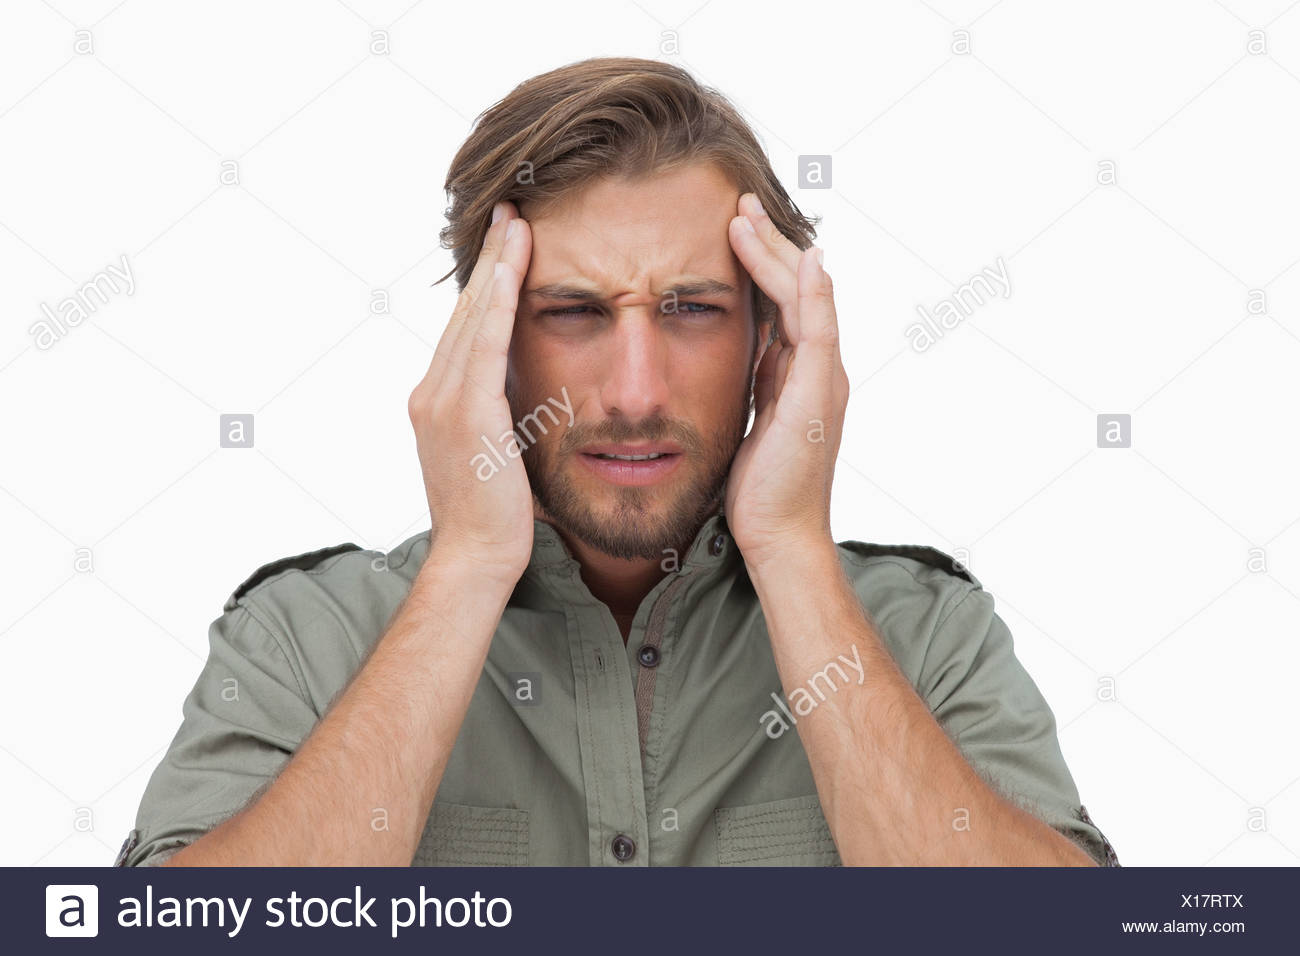 Man grimacing with pain of headache - Stock Image